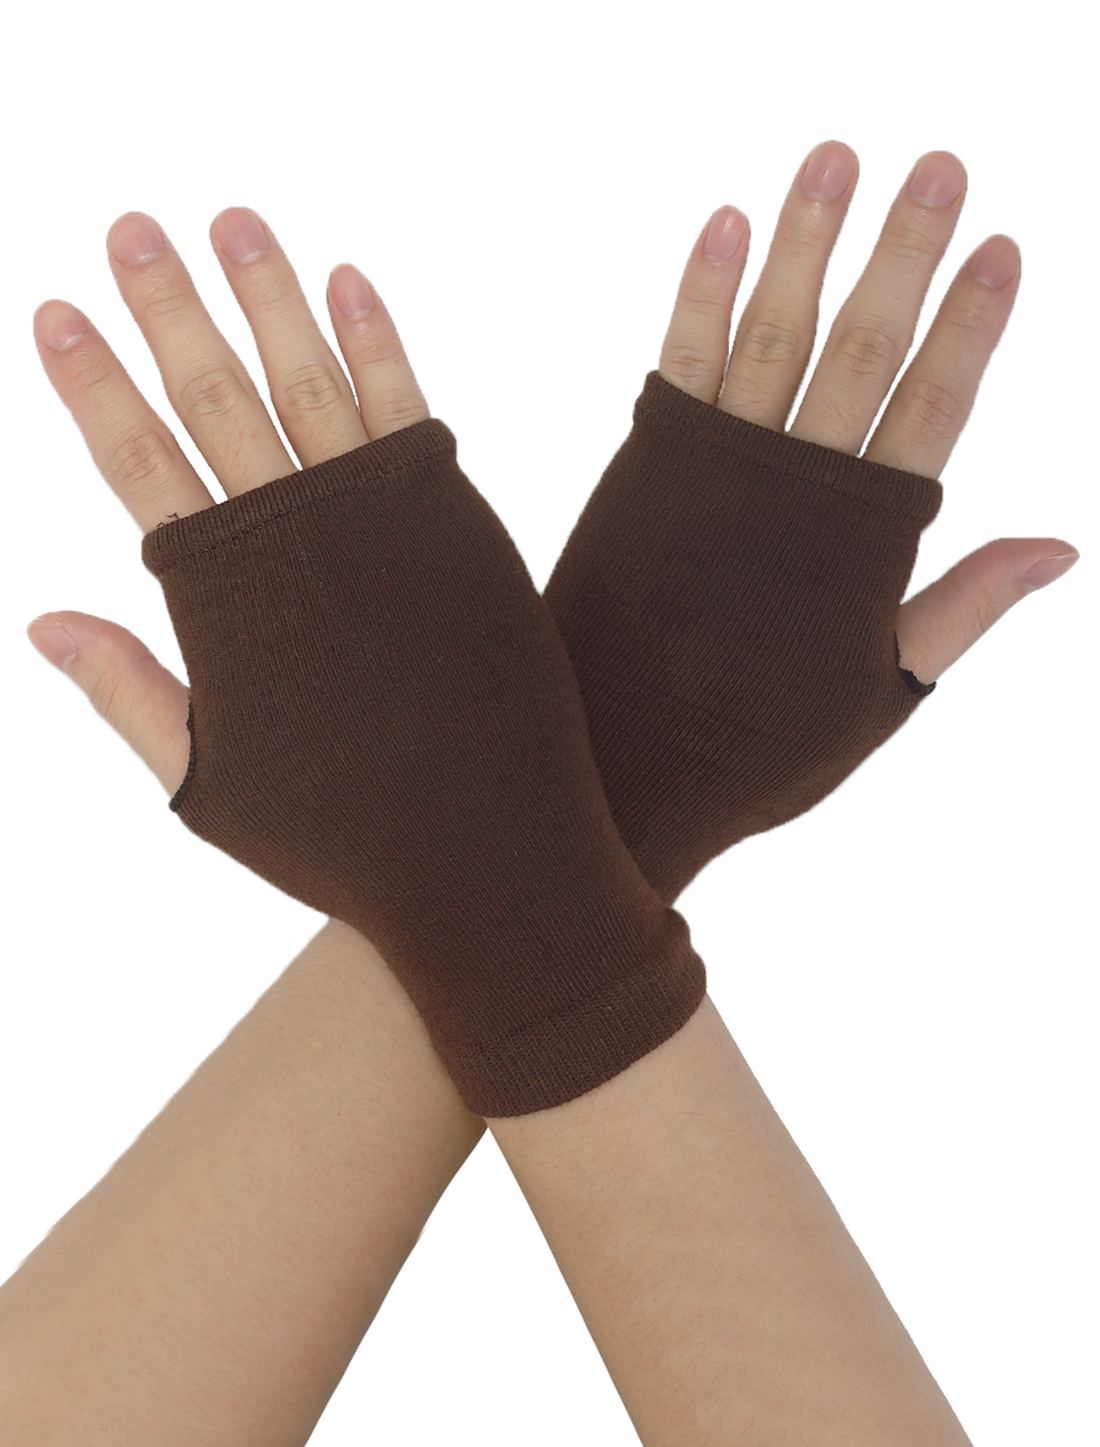 Stretchy Coffee Color Fingerless Mittens Palm Warmers for Lady